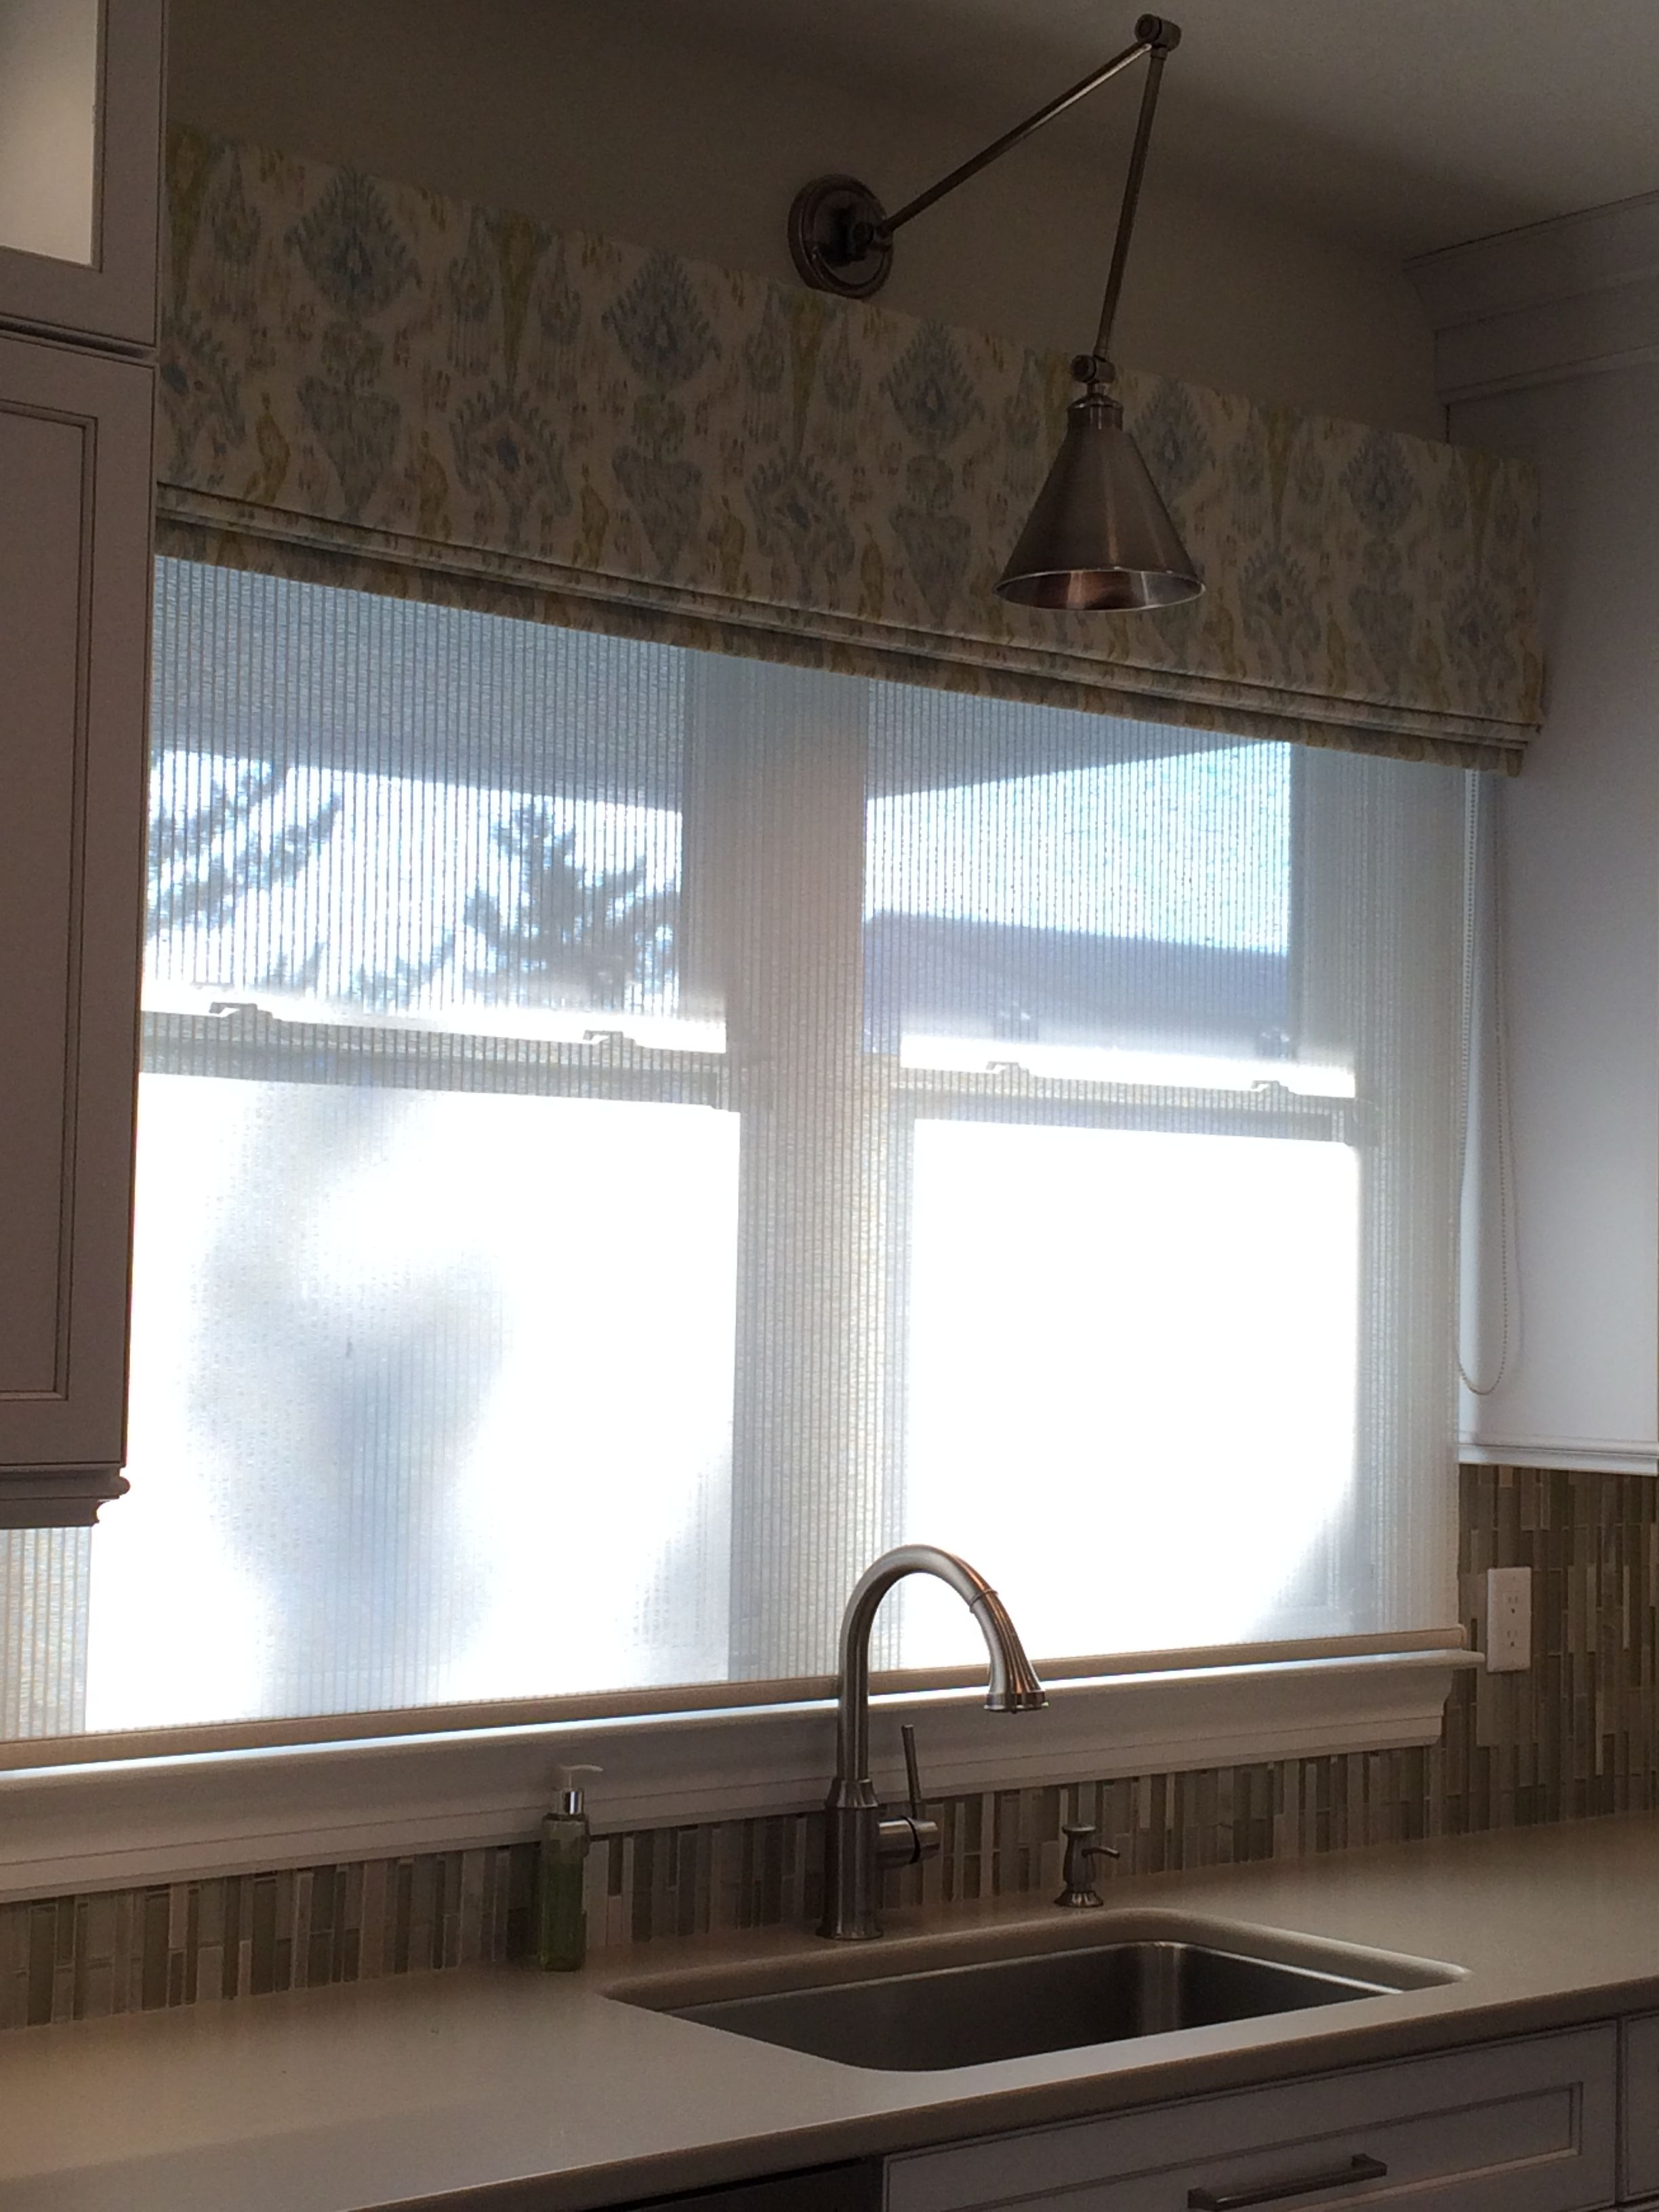 best blackout curtain valances picture barn full reviews size new of block valance ideas color concept pottery curtains amazing